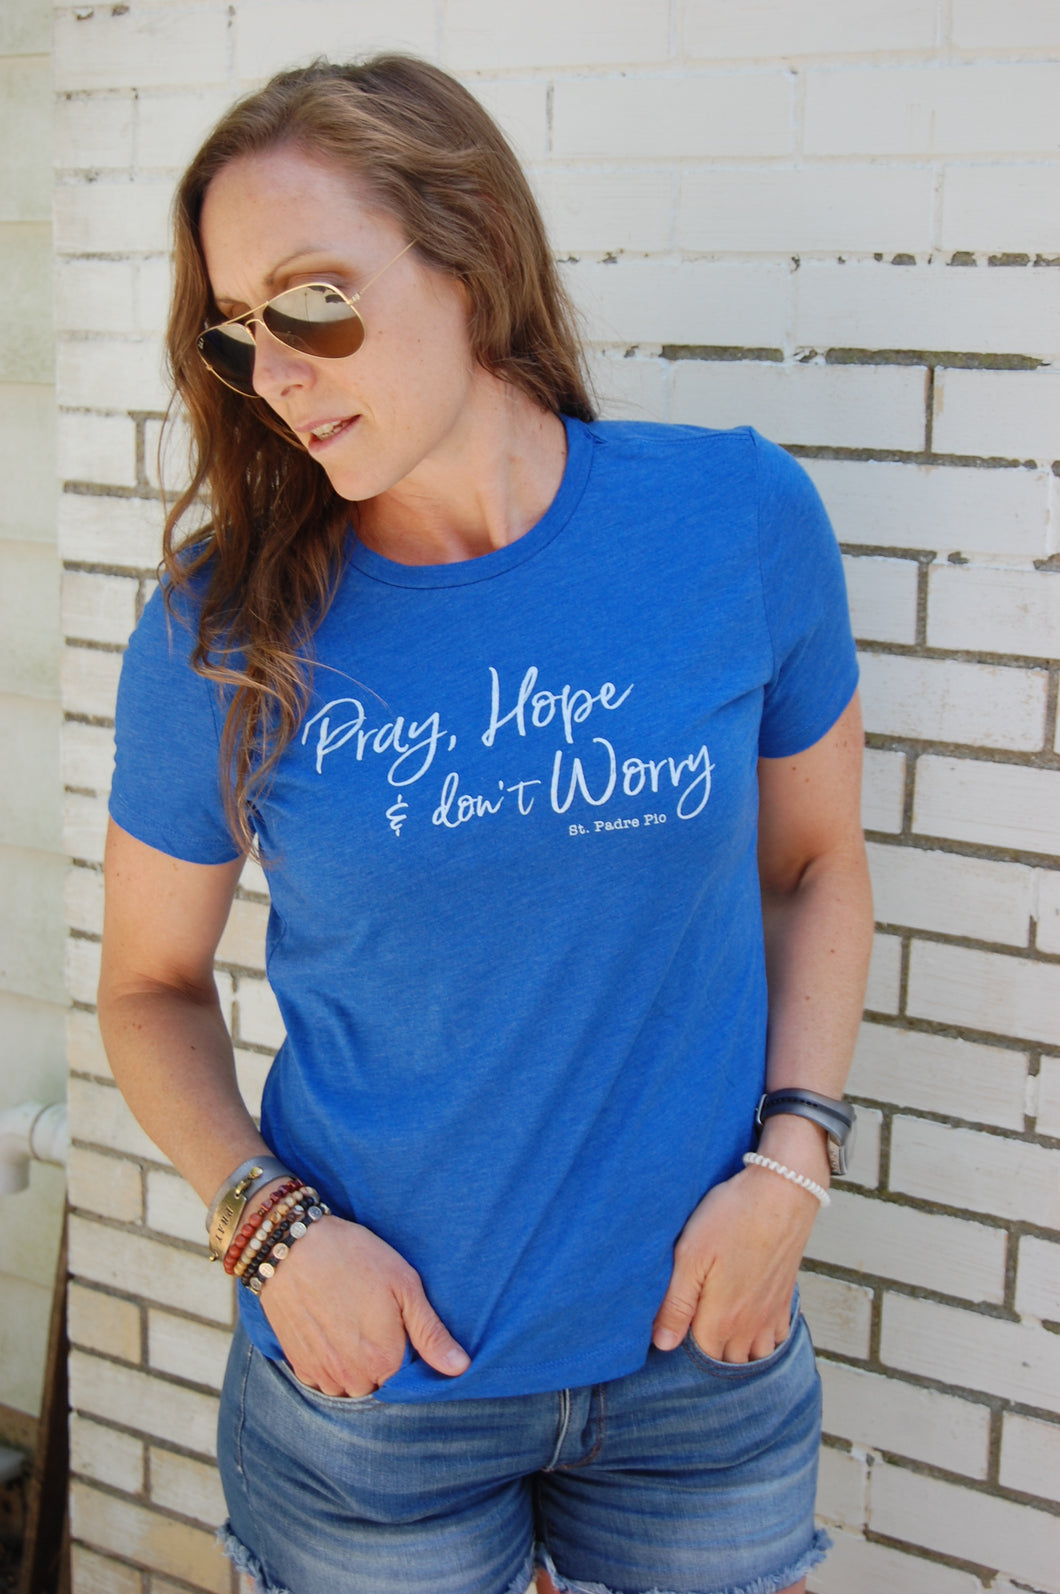 Pray, Hope and Don't Worry. St. Padre Pio Tee